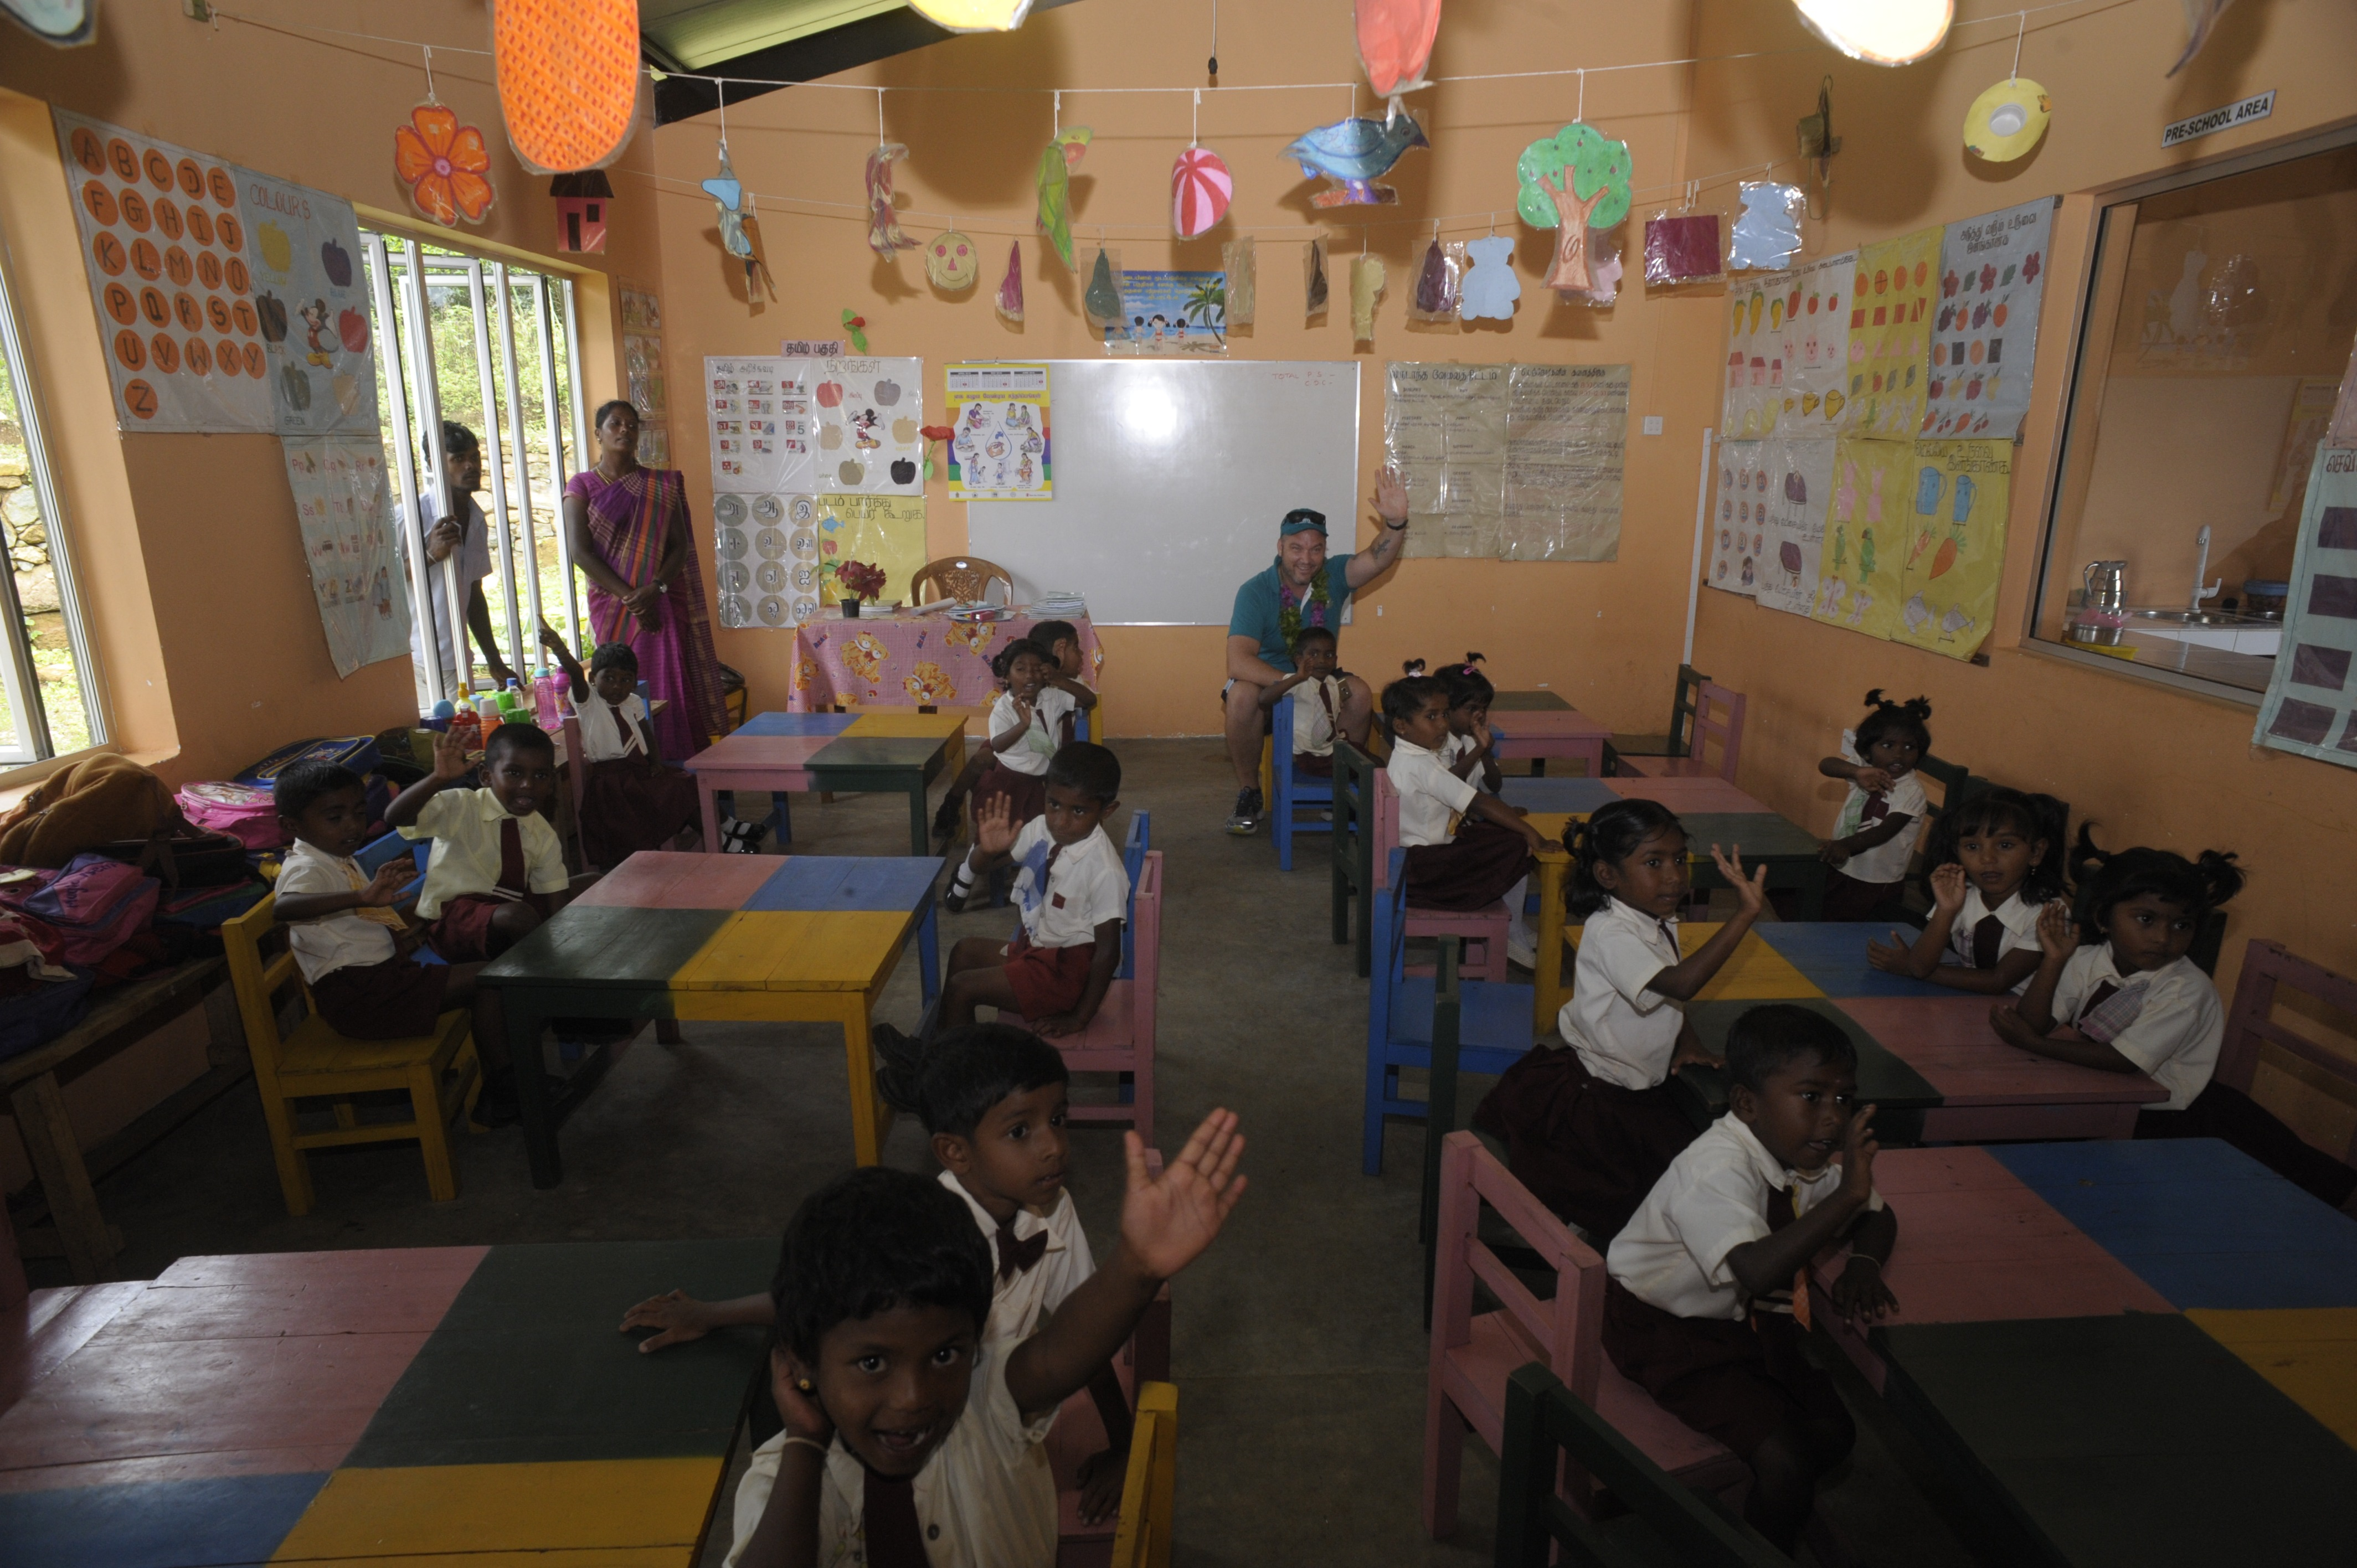 Kids classroom at the Creche